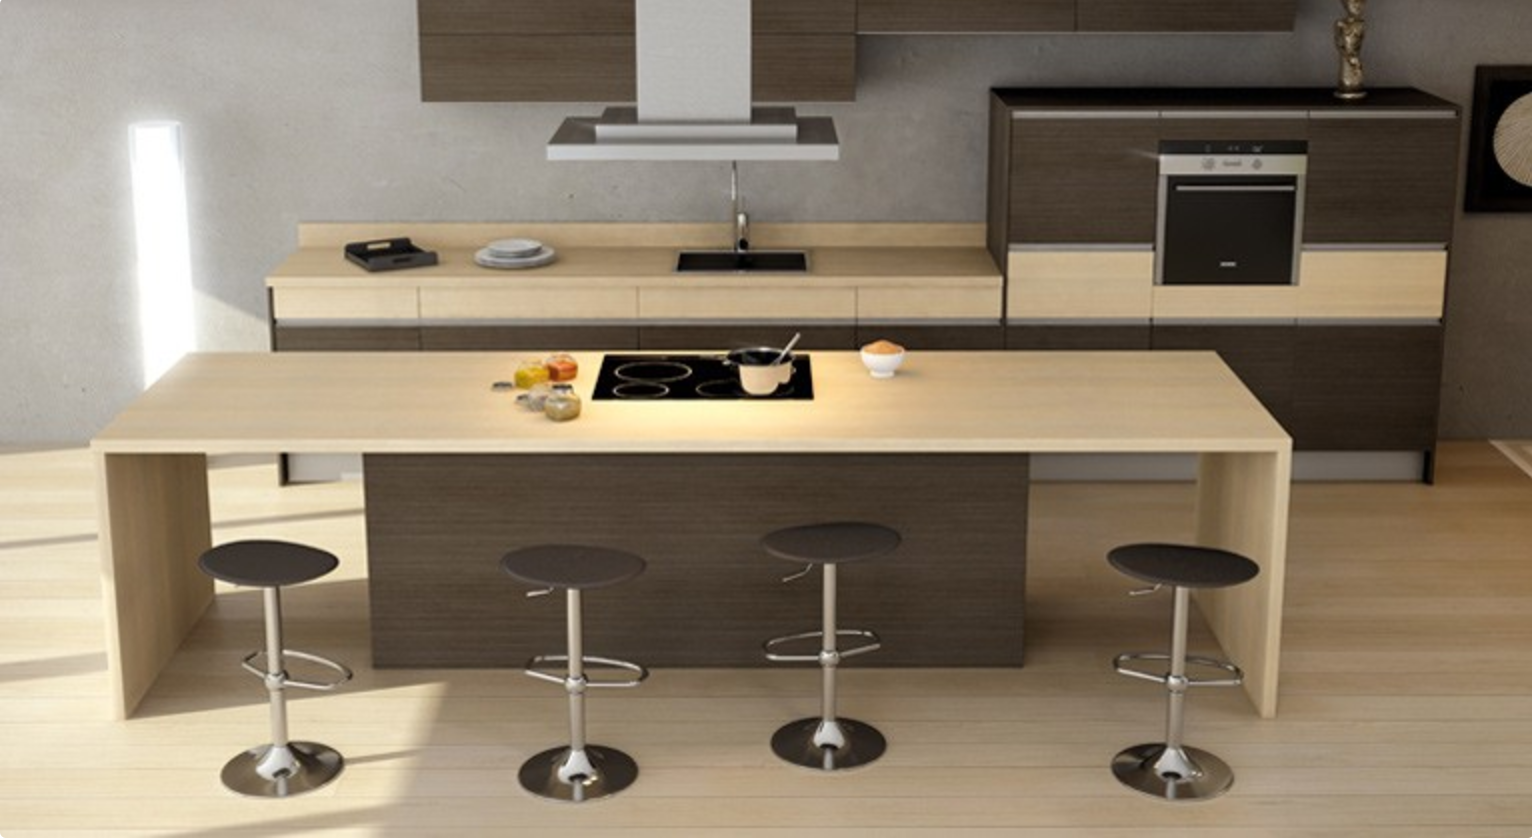 cuisines aix les bains annecy chambery geneve savoie rumilly seynod agencement concept. Black Bedroom Furniture Sets. Home Design Ideas